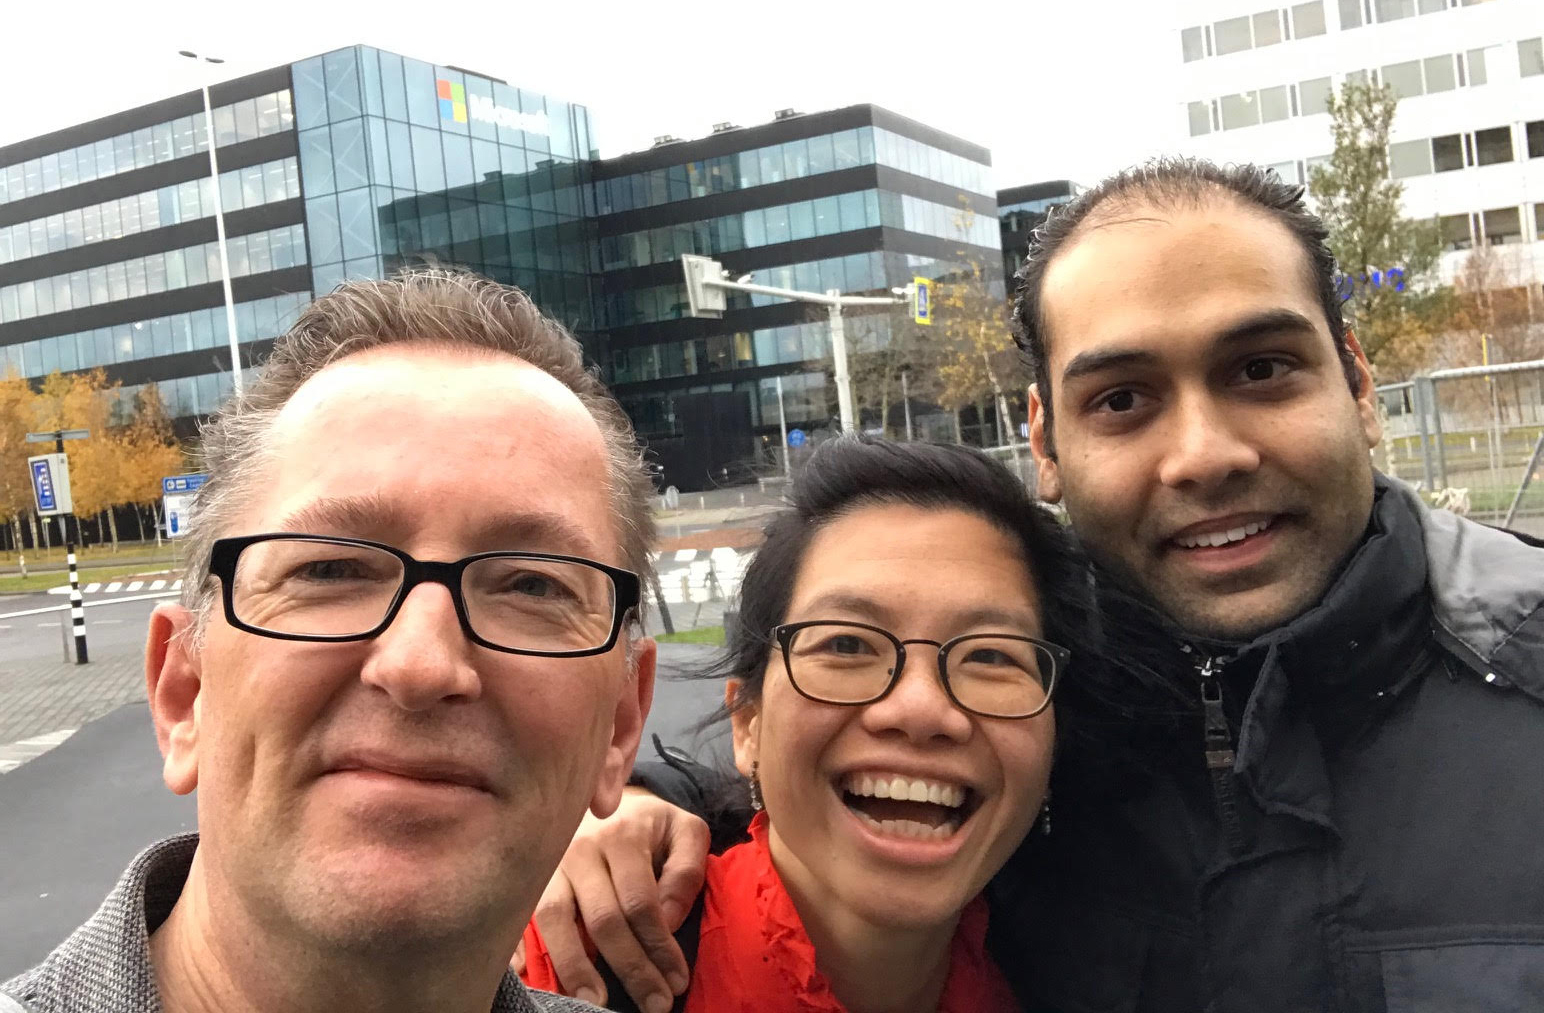 Design for Care bij Microsoft Health: Robert, Jing en Sagar voor deur selfie.